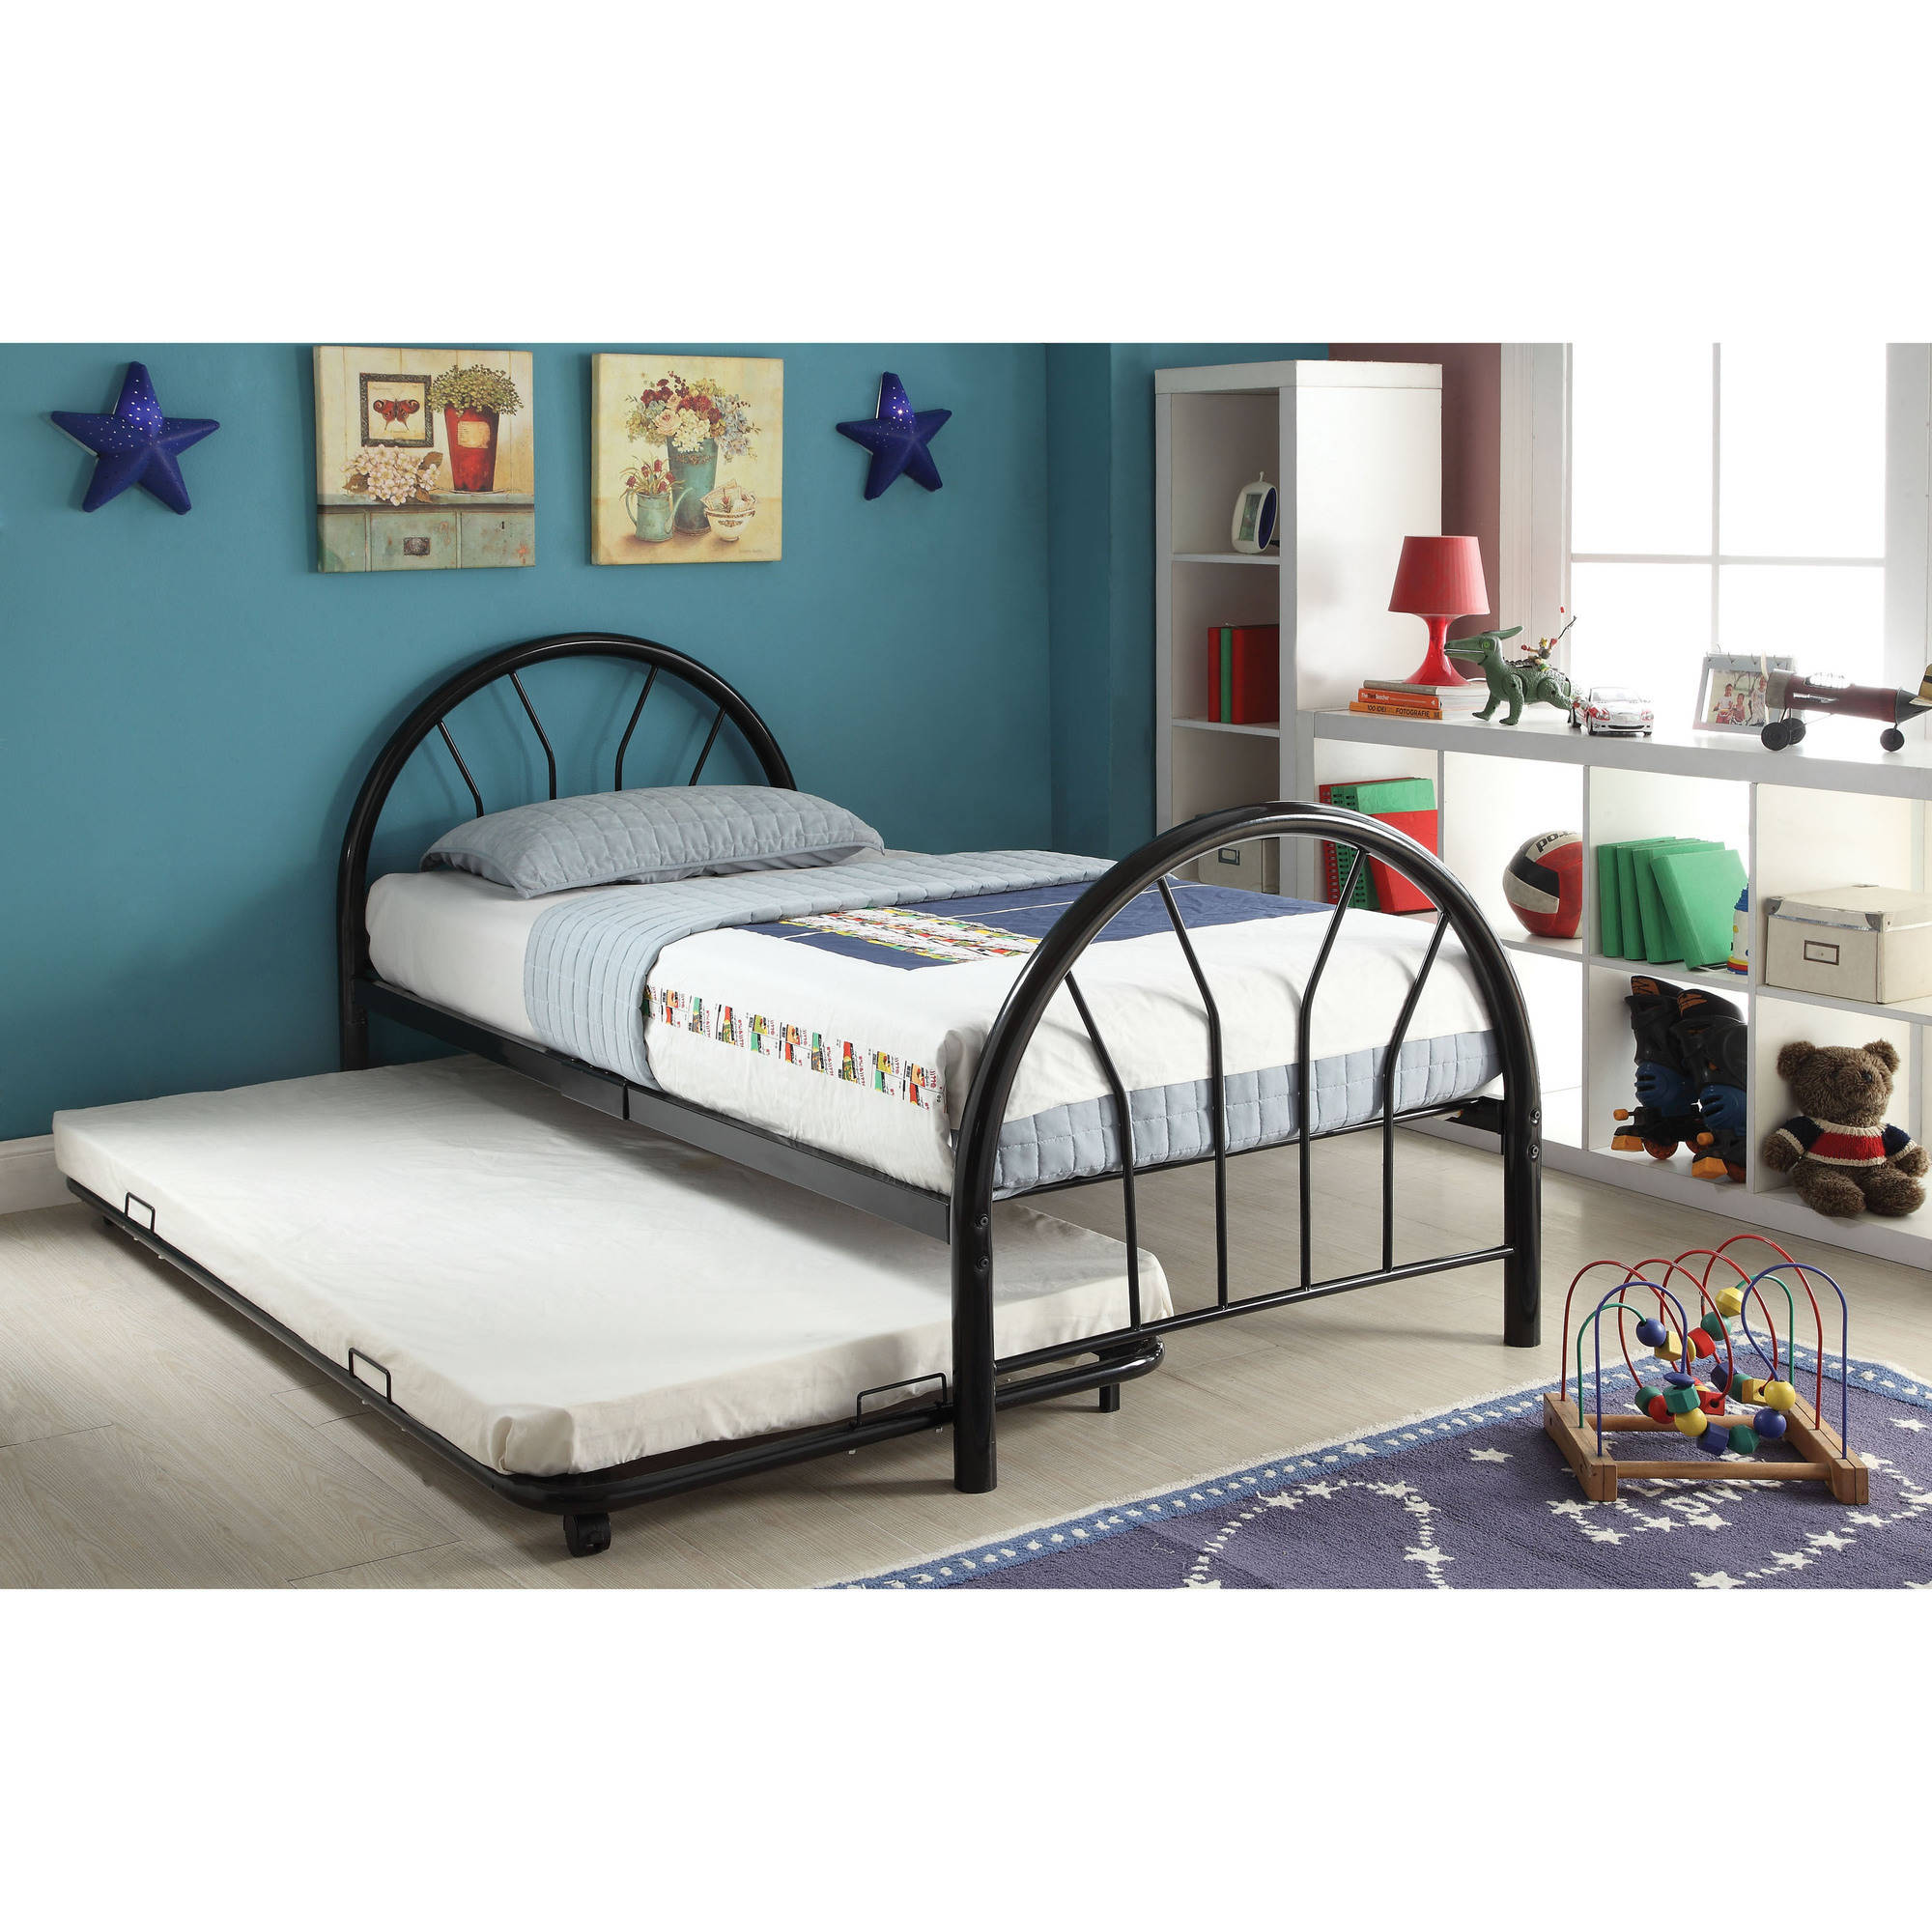 Cailyn Twin Bed With Trundle Black Walmart Com